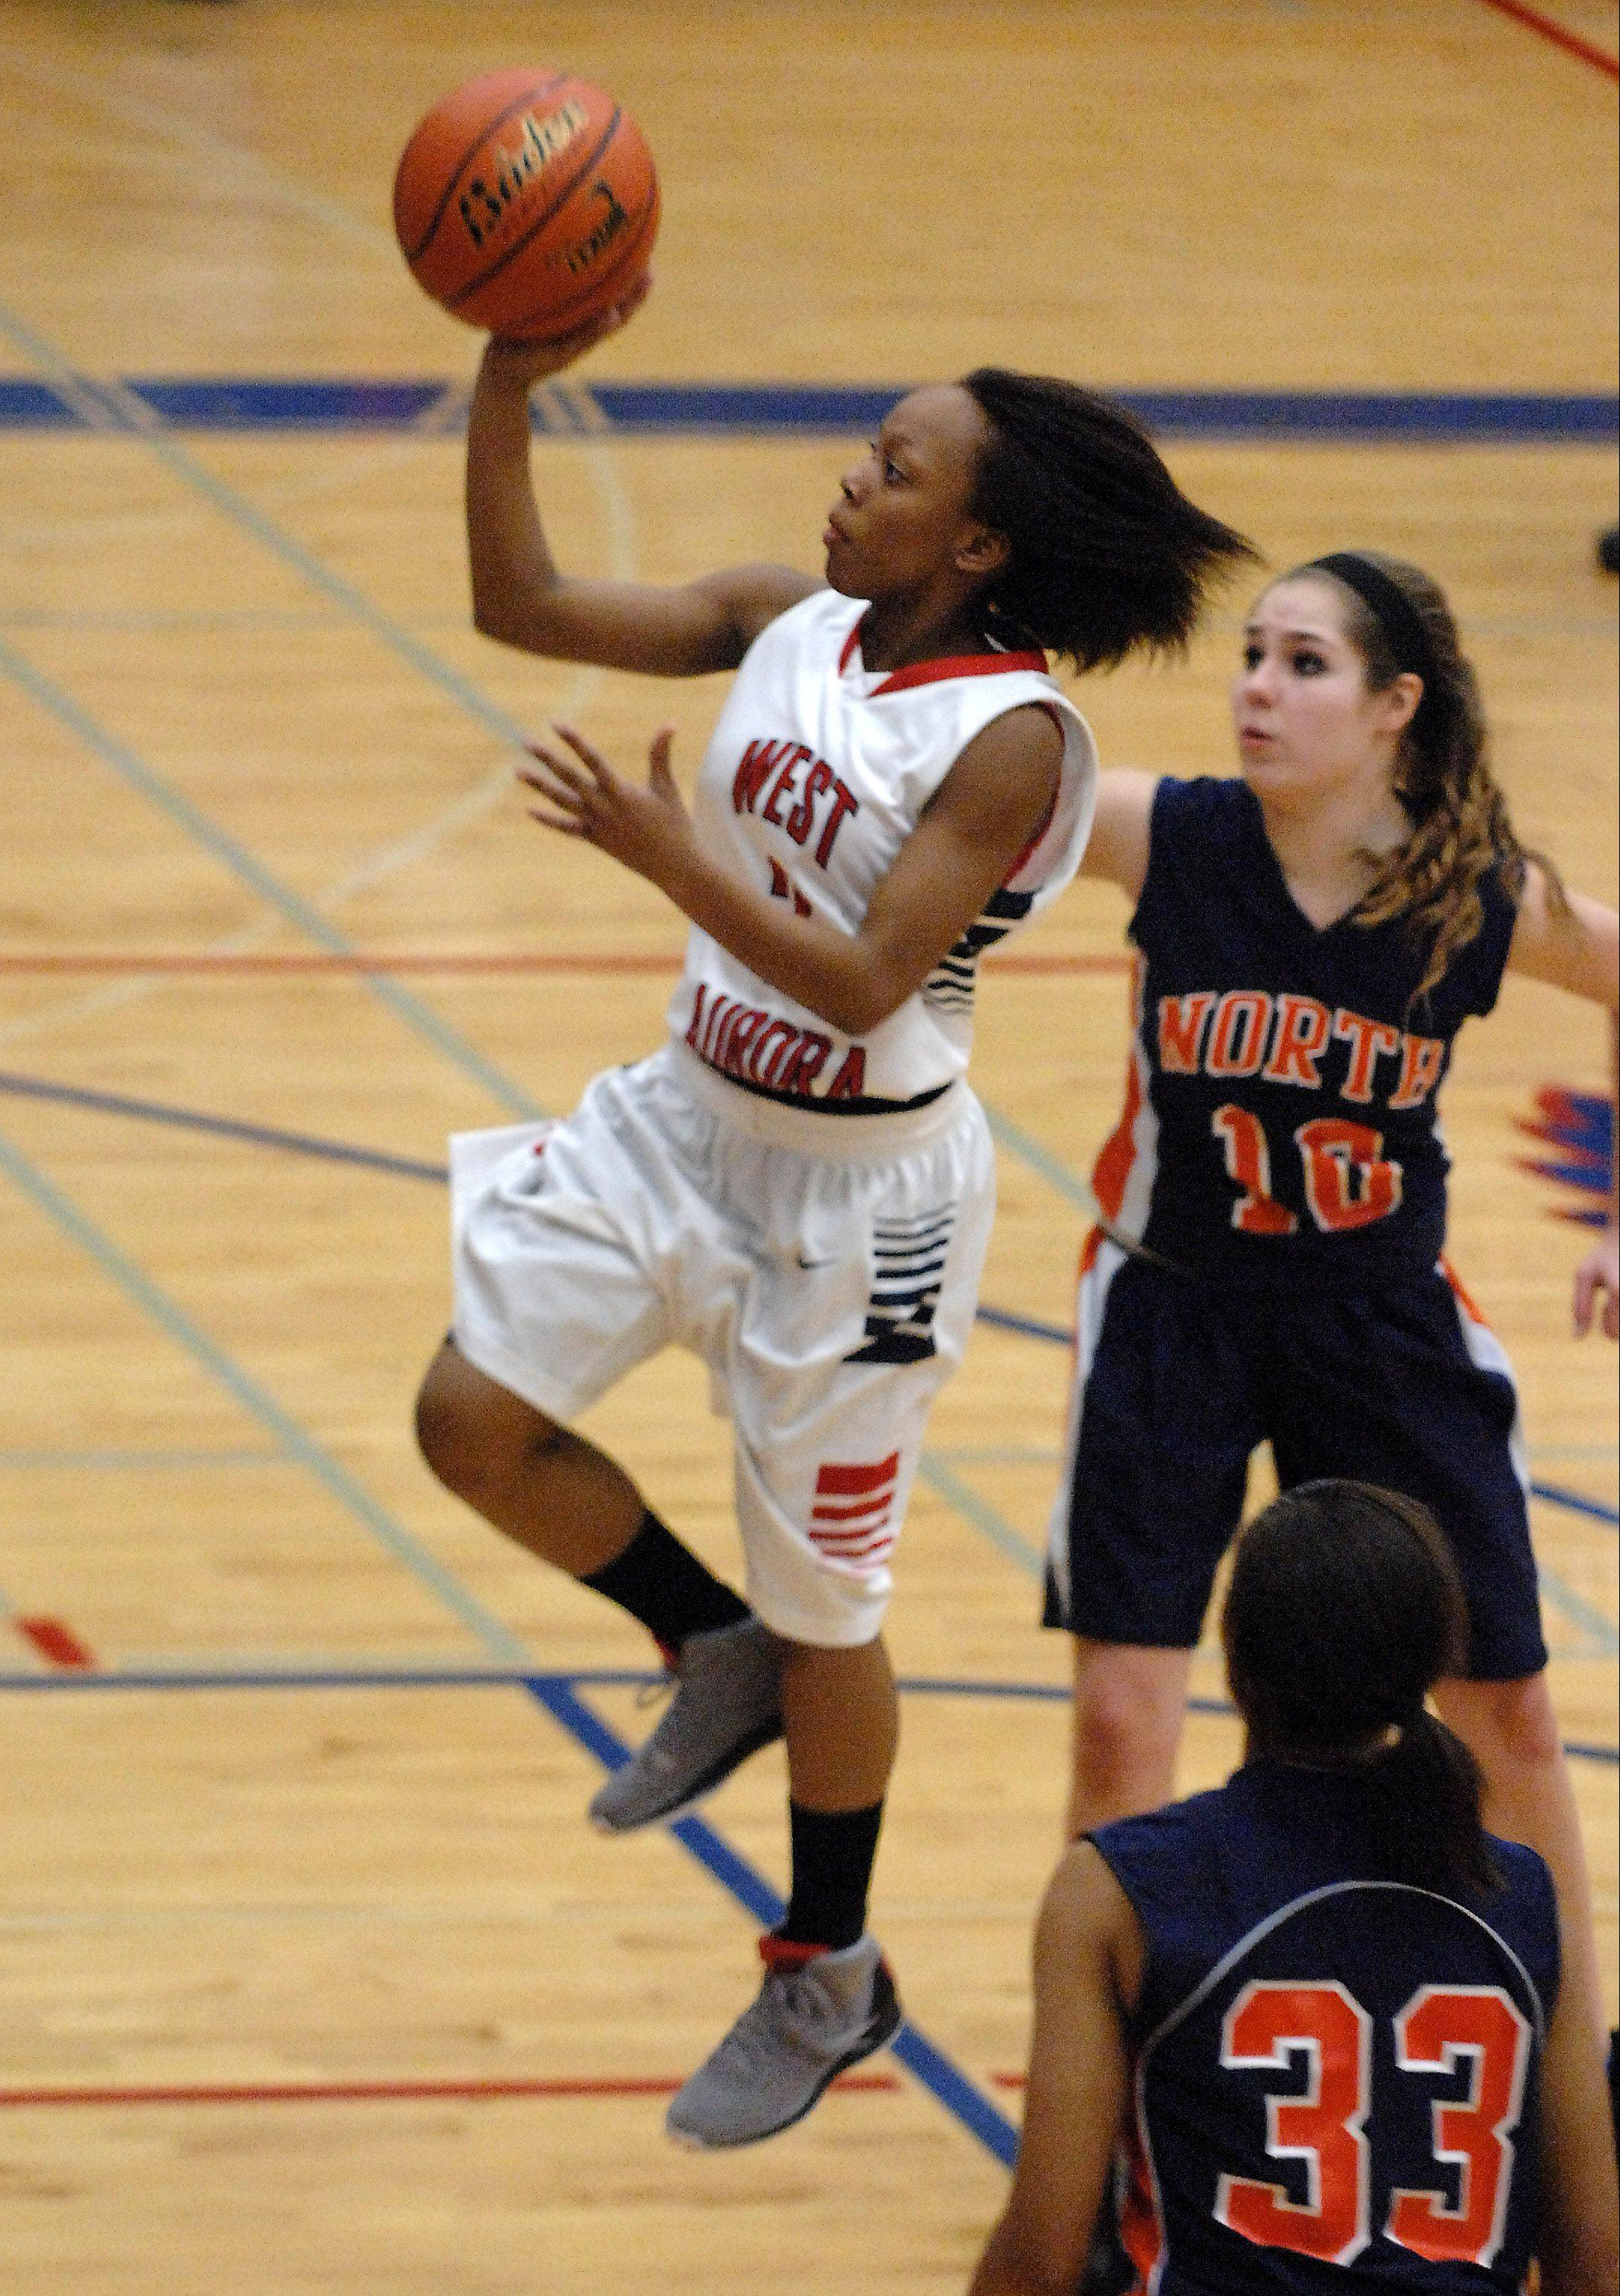 Naperville North too swift for West Aurora